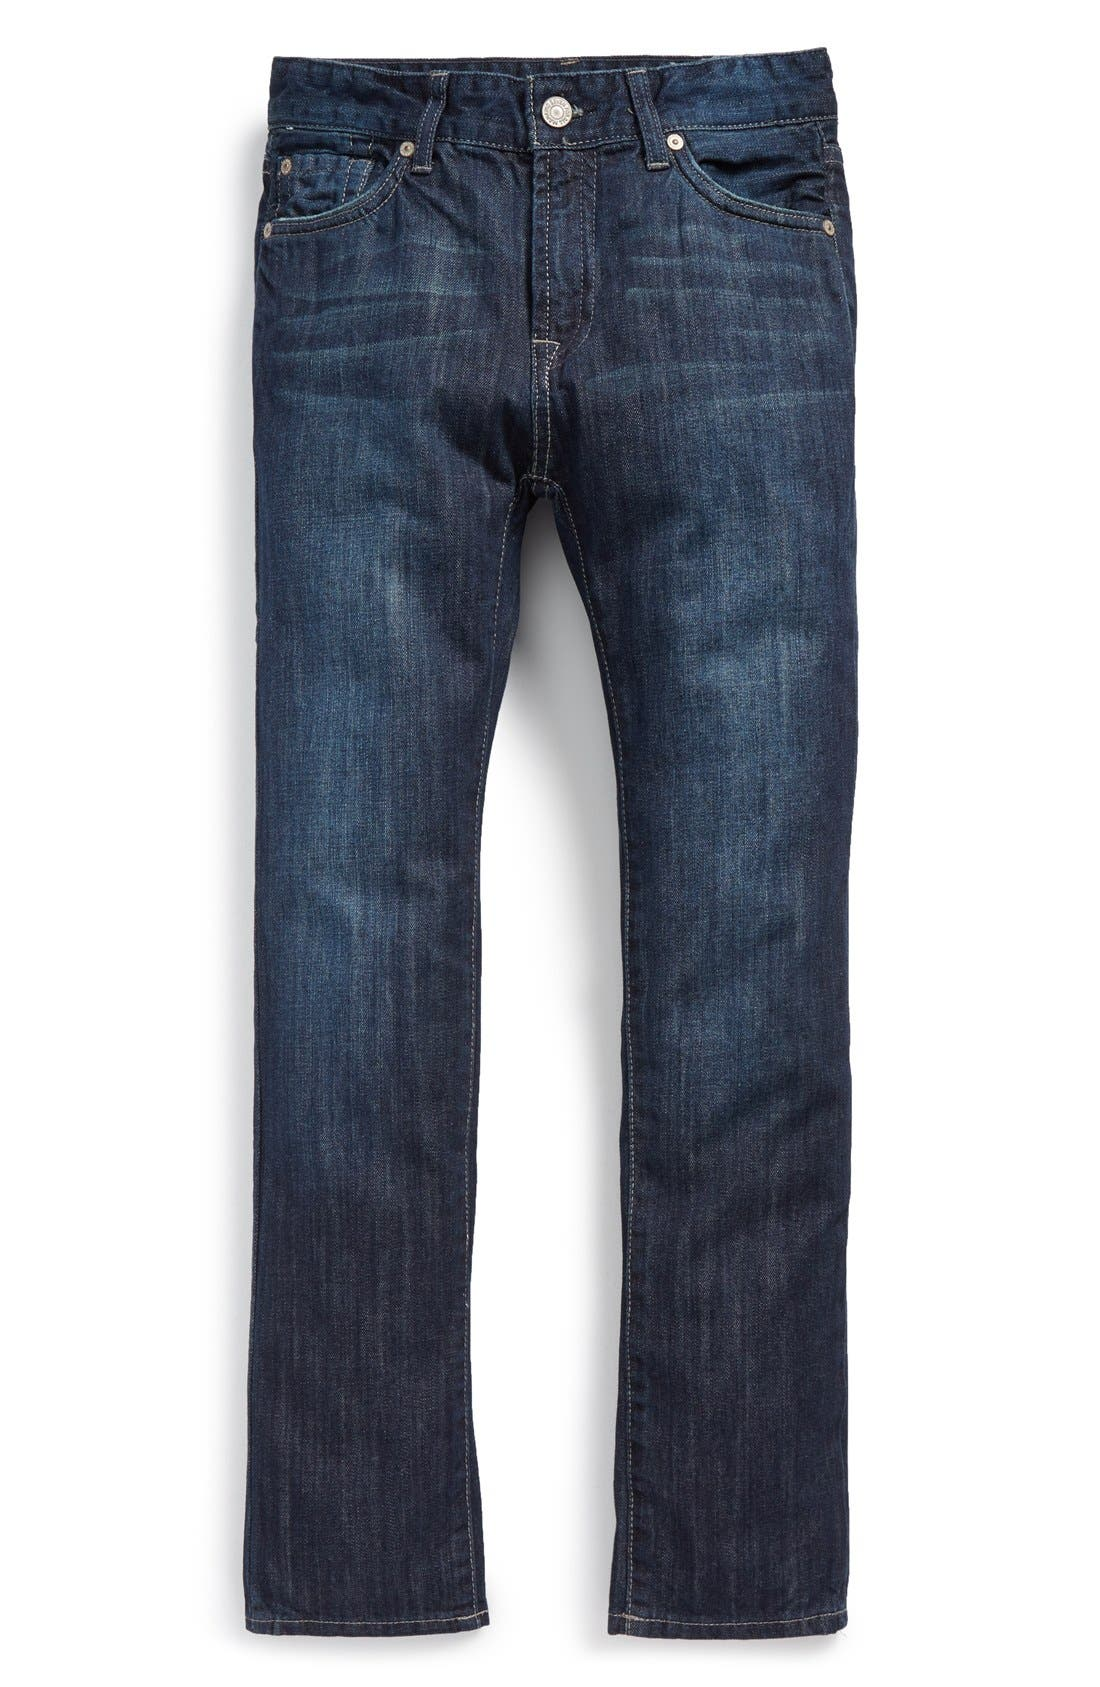 Alternate Image 1 Selected - 7 For All Mankind® 'Slimmy' Jeans (Big Boys)